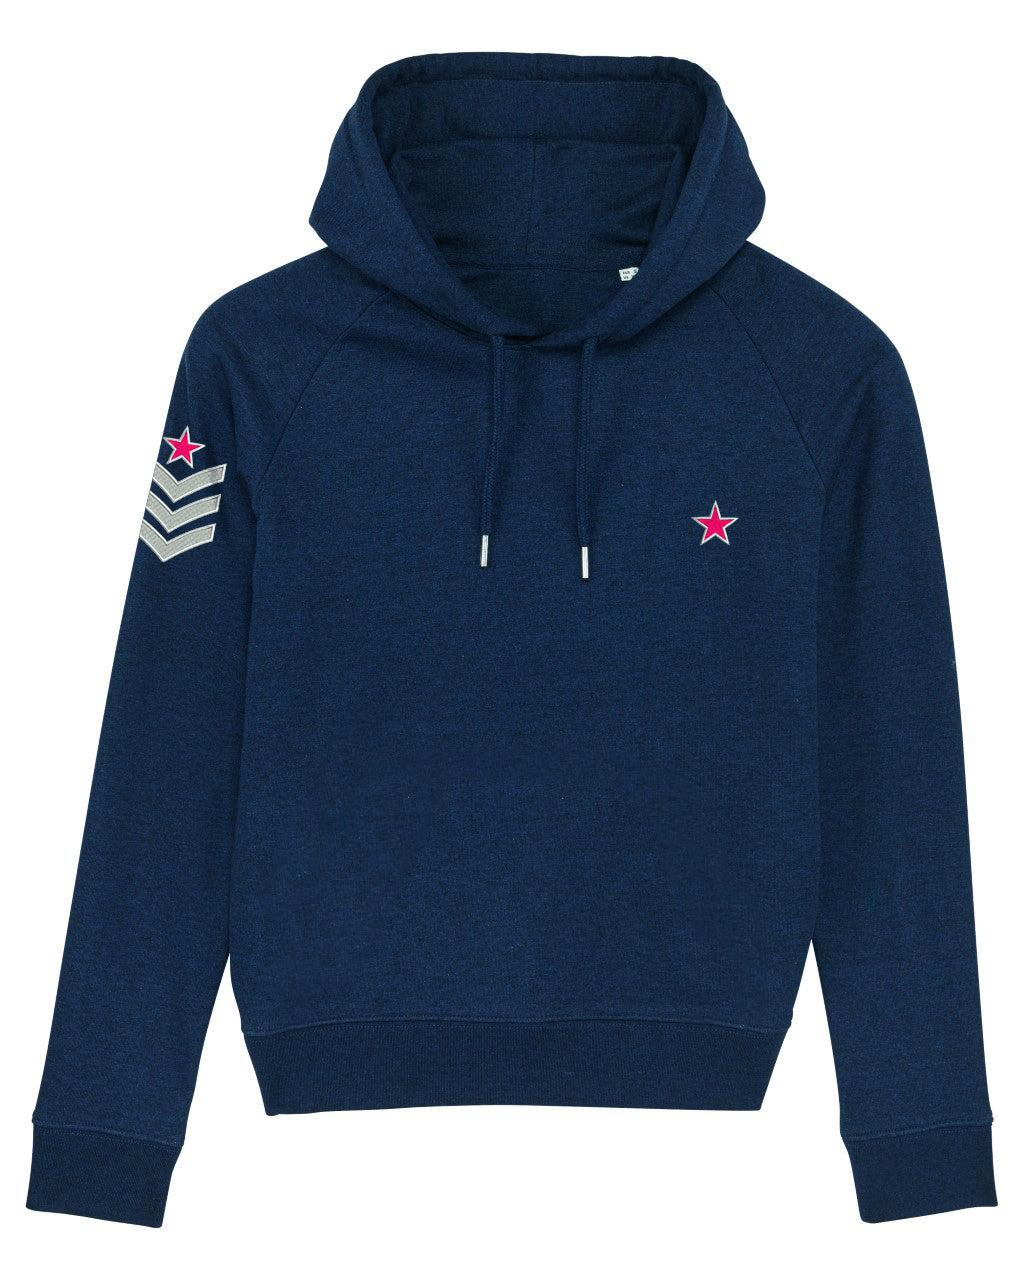 Navy Military Style hoodie